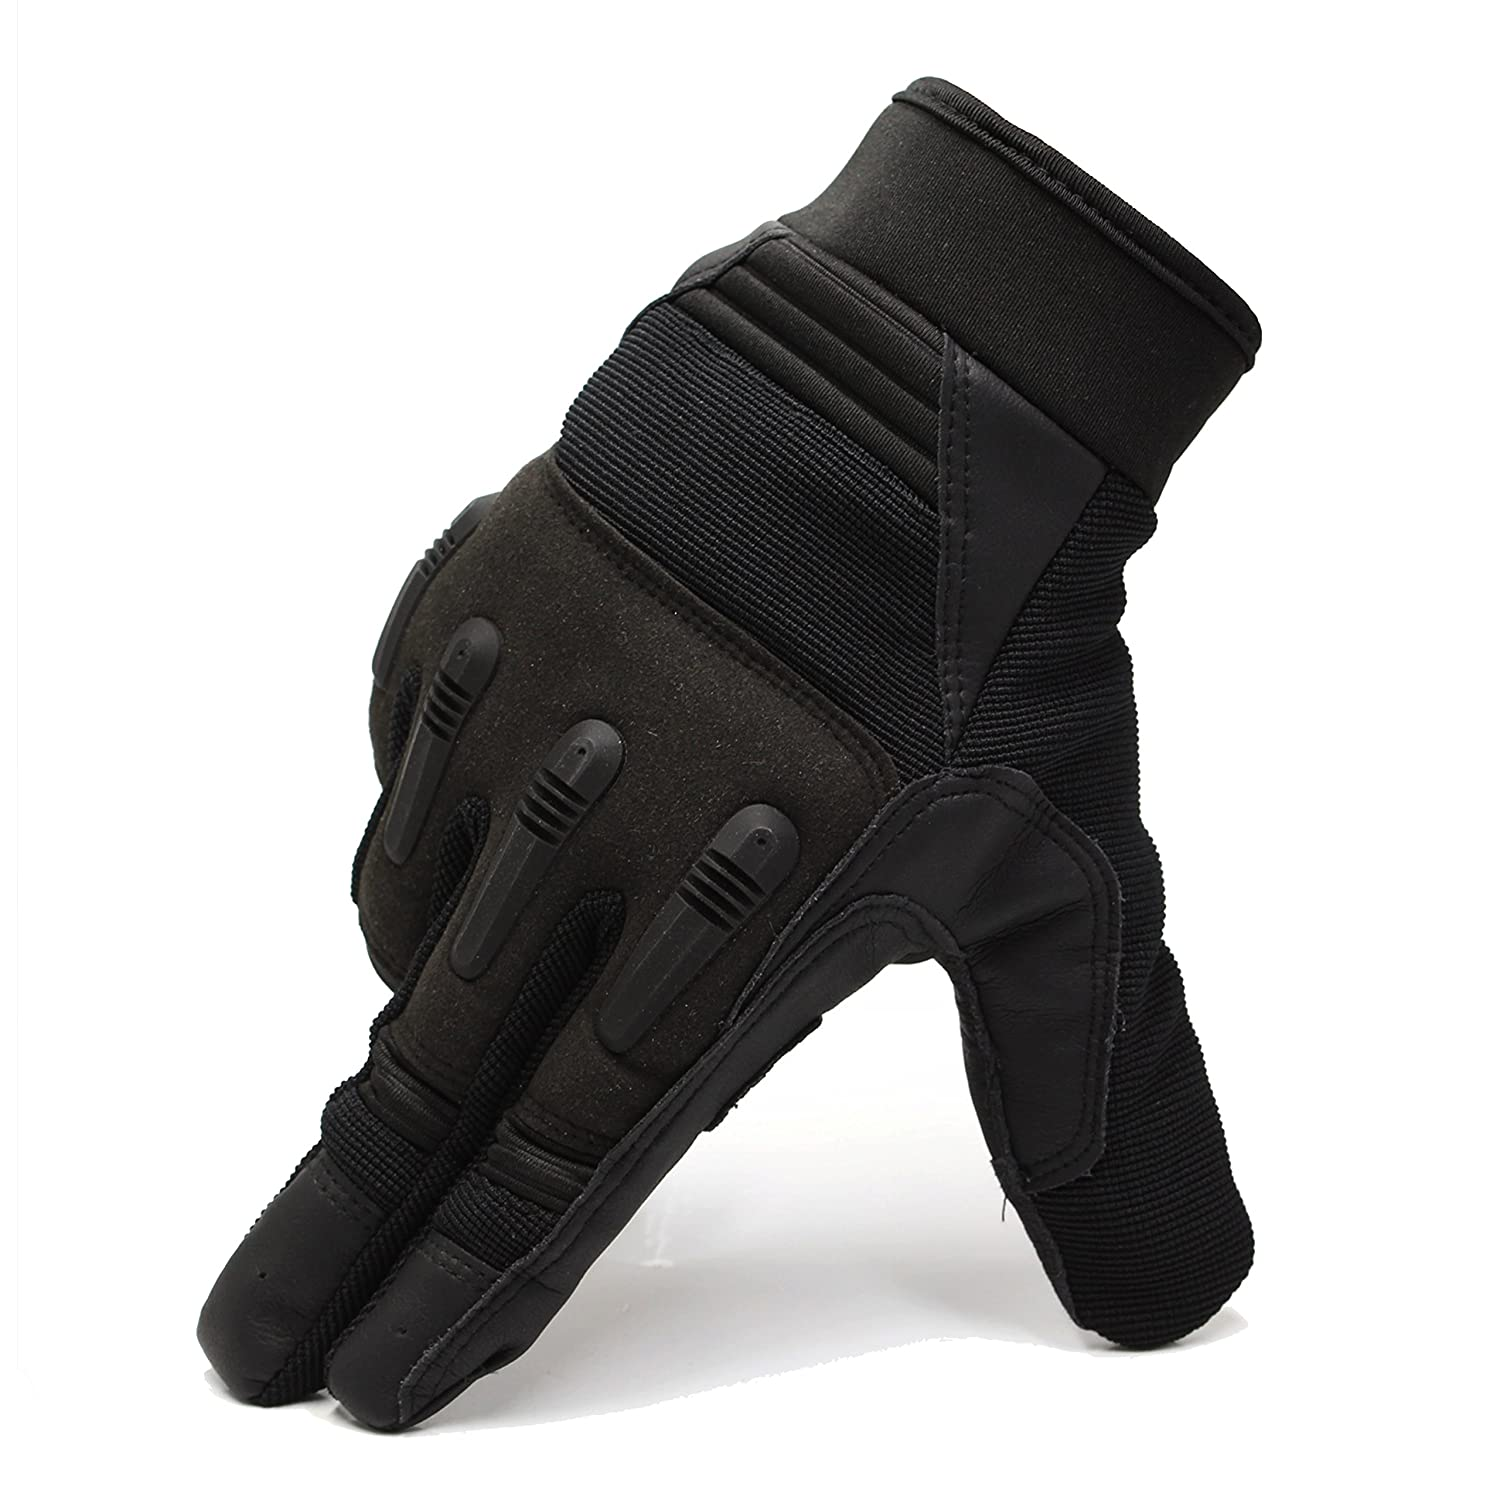 Touch Screen Sport Men Leather Gloves for Winter with Joint Protection and Adjustable FRETOD